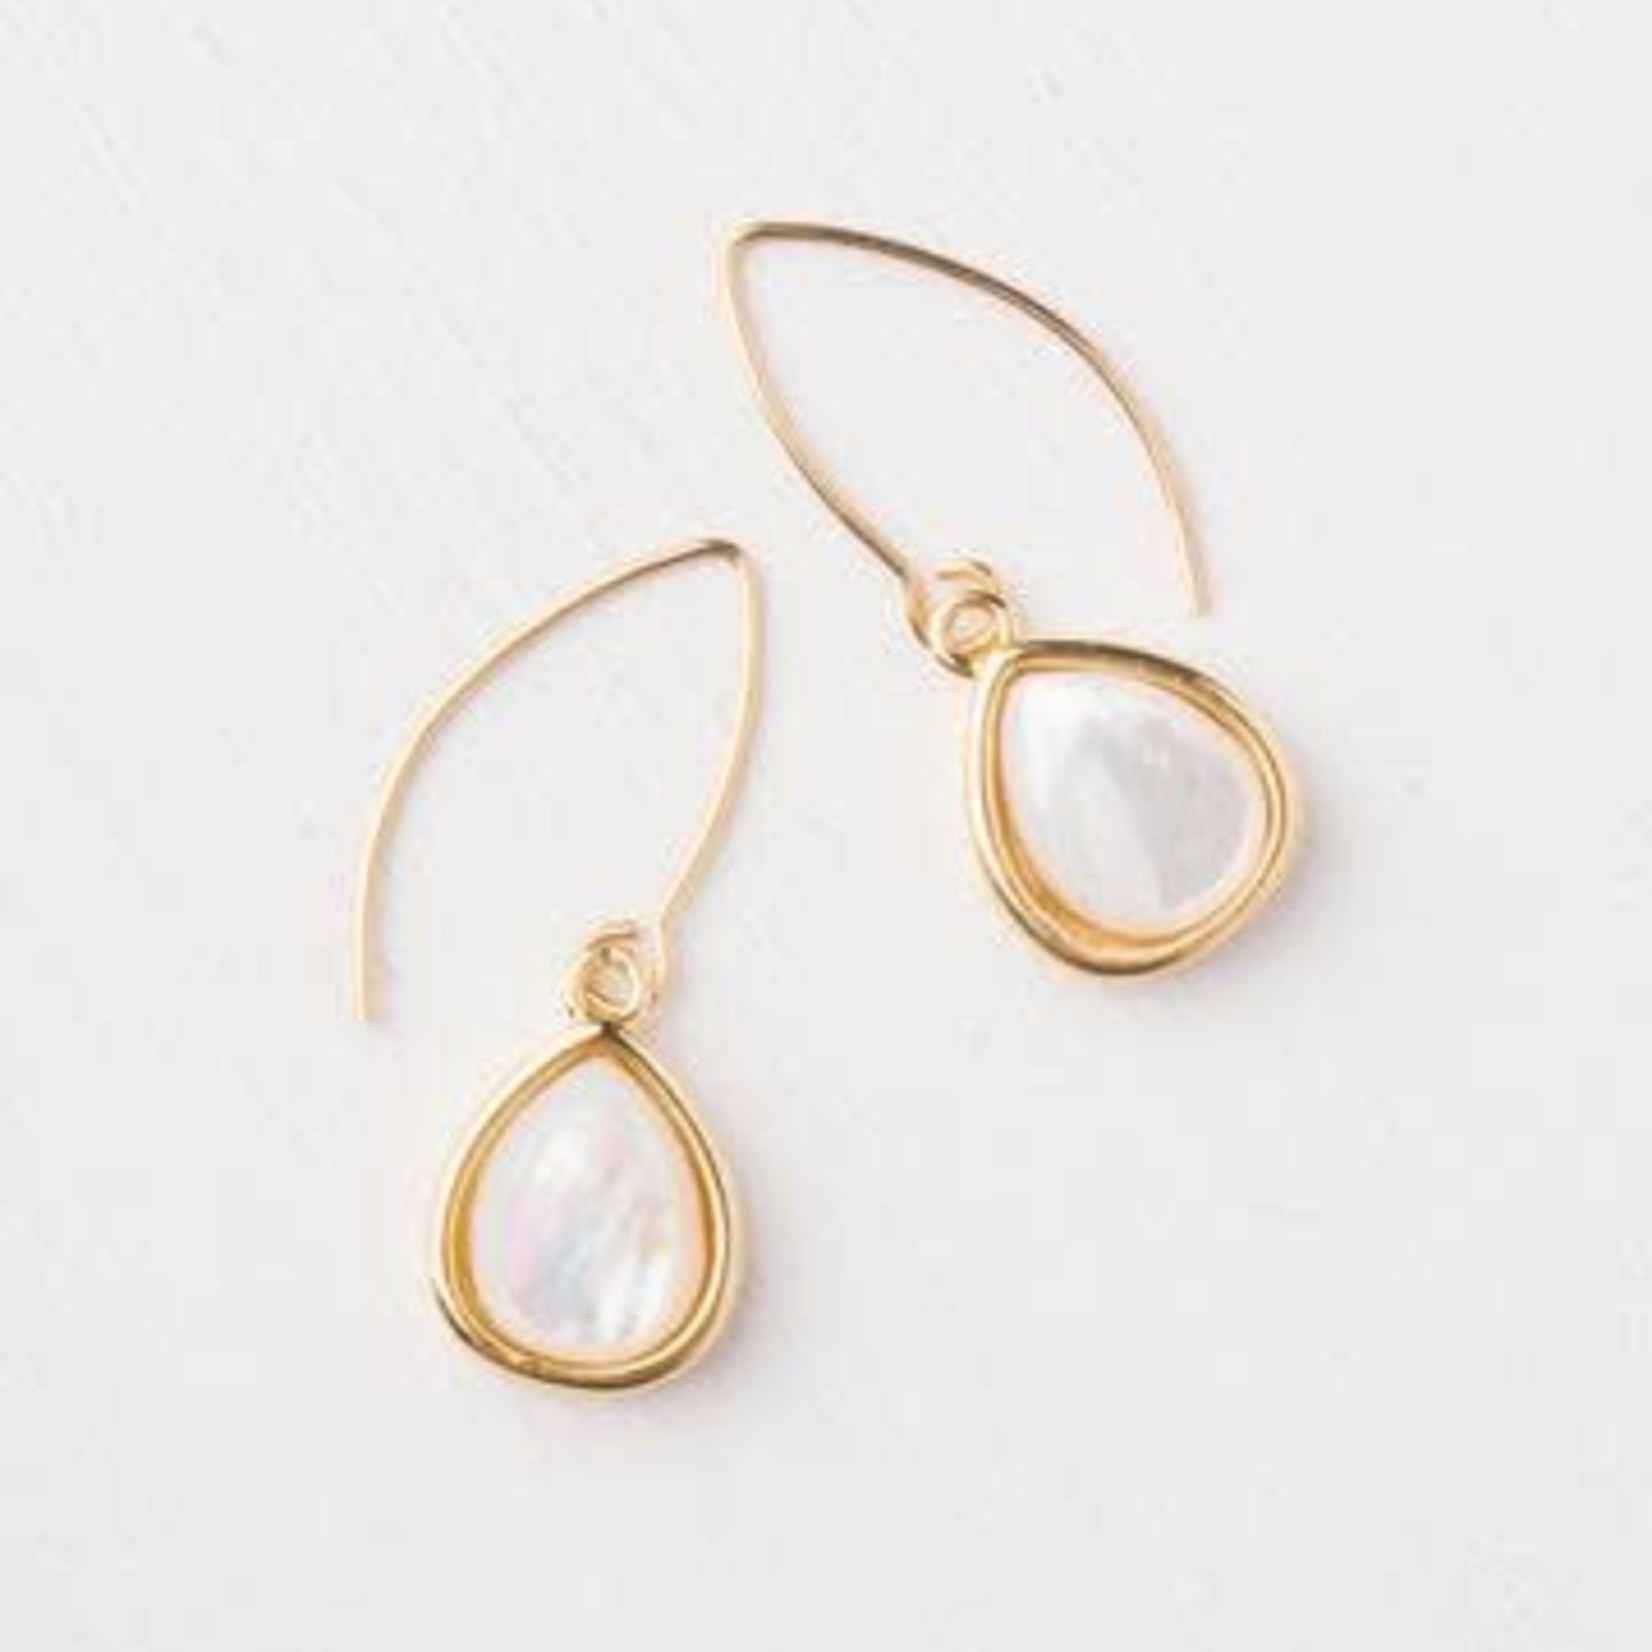 The Starfish Project Charity Gold Mother of Pearl Earrings, China